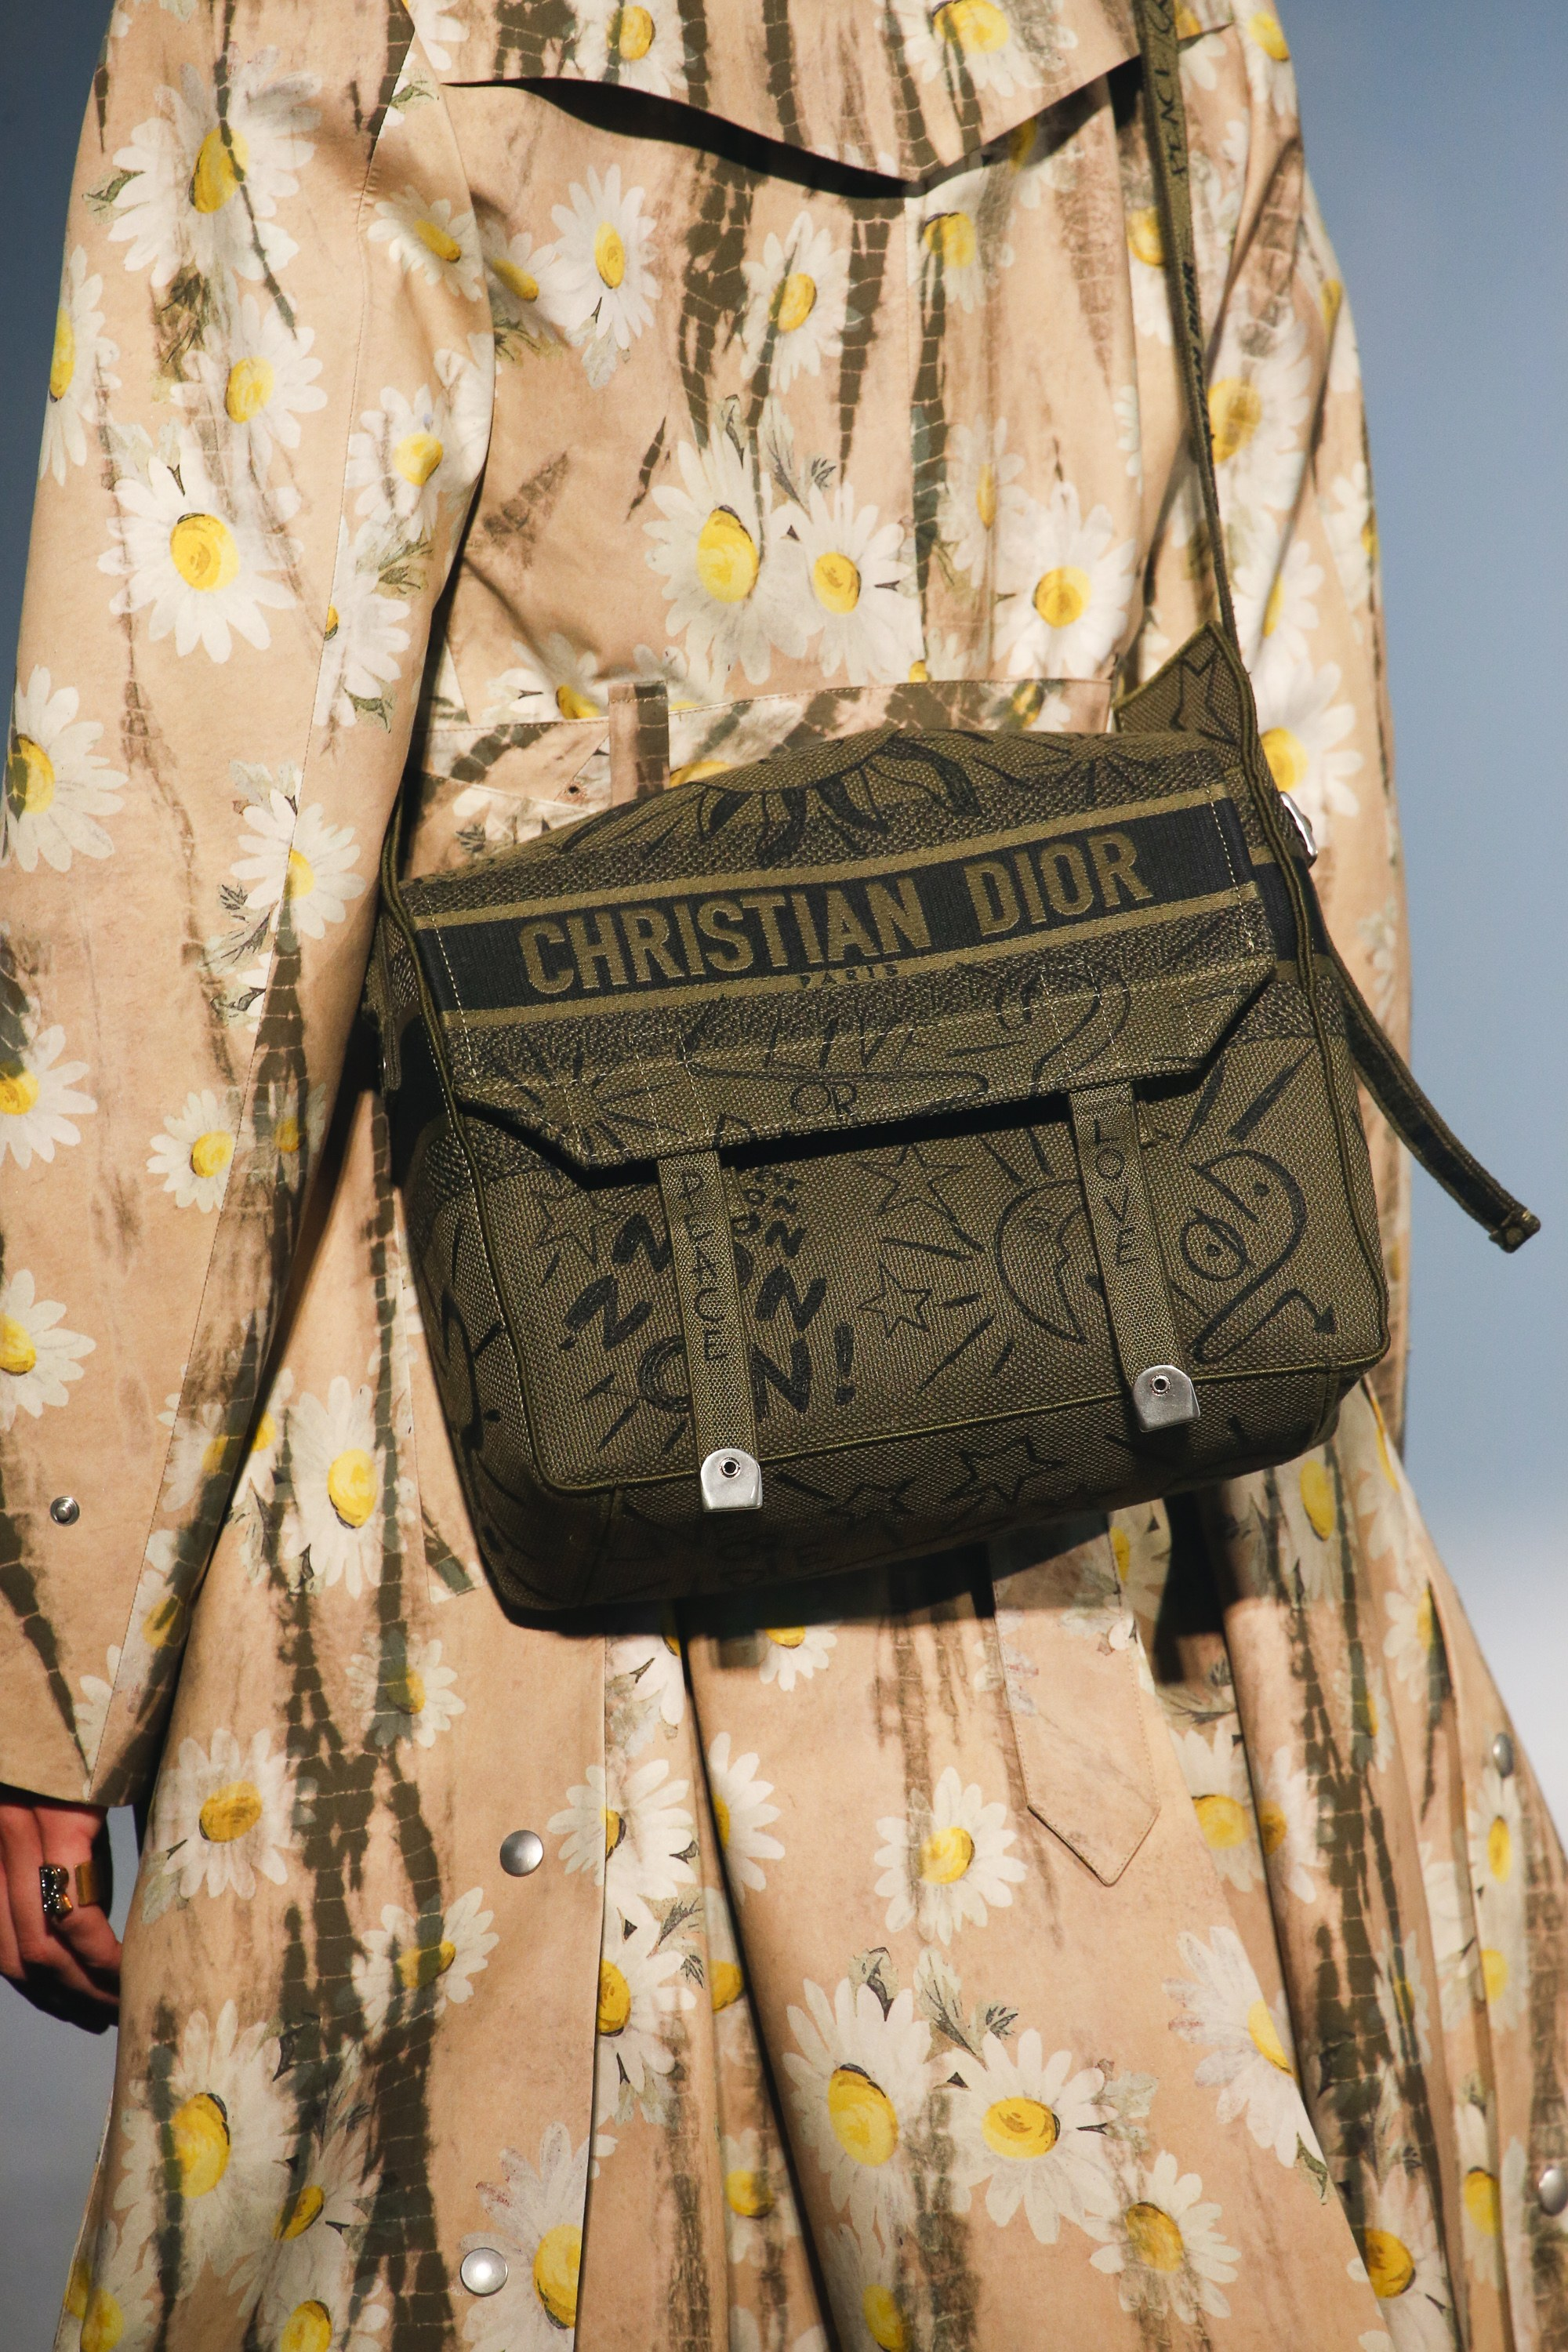 Dior SpringSummer 2019 Runway Bag Collection  Spotted